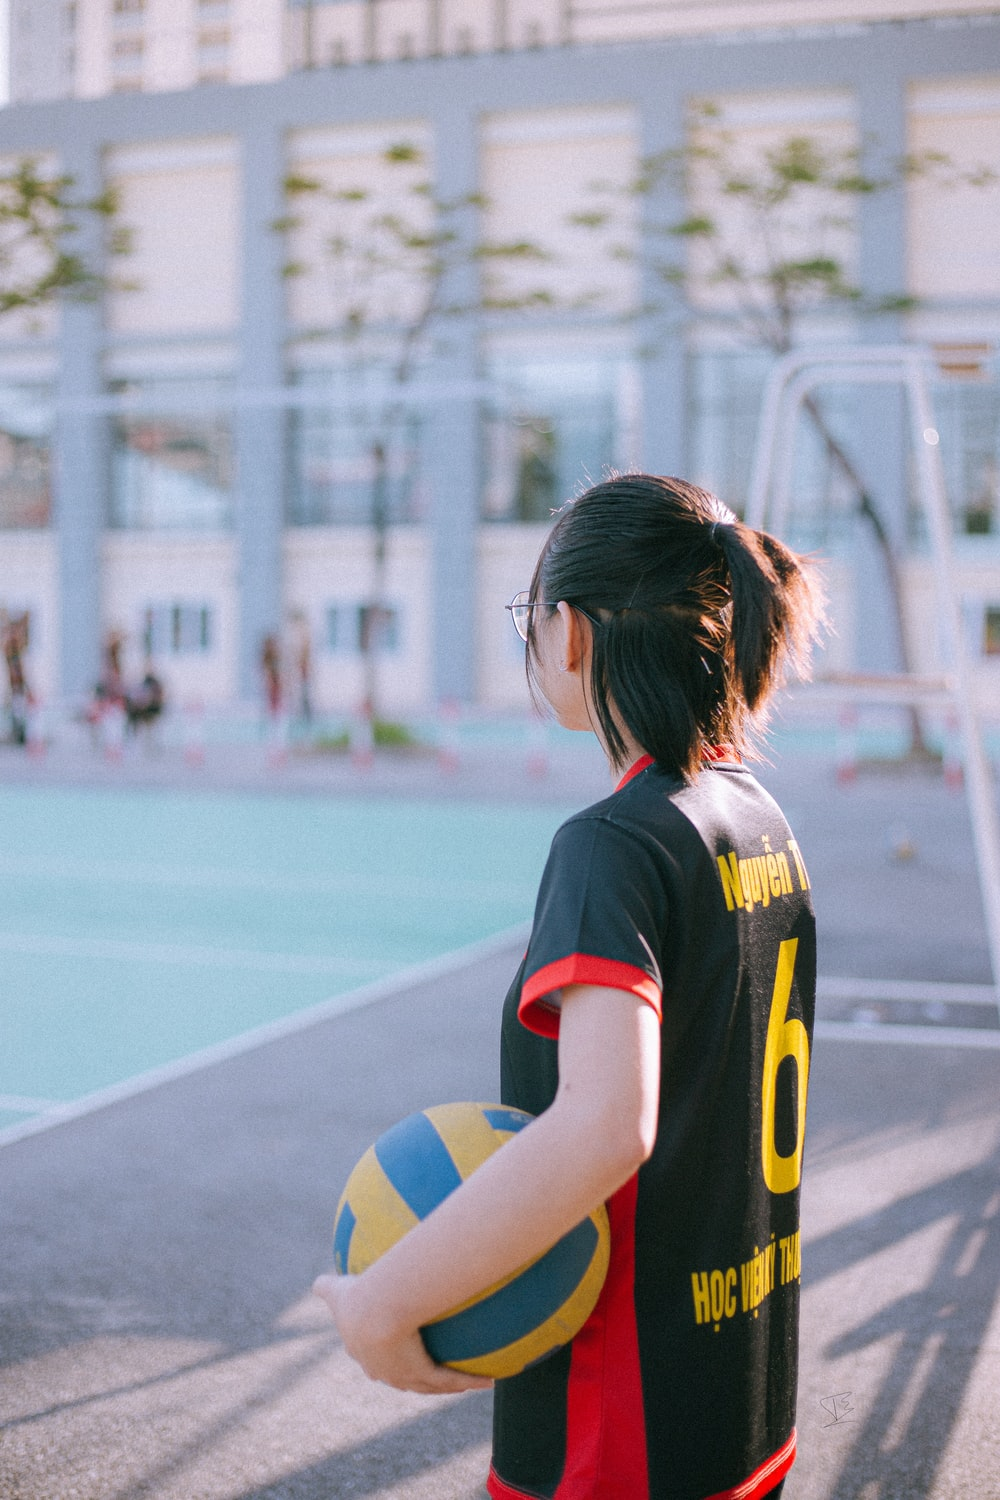 woman in black and yellow jersey shirt standing on track field during daytime